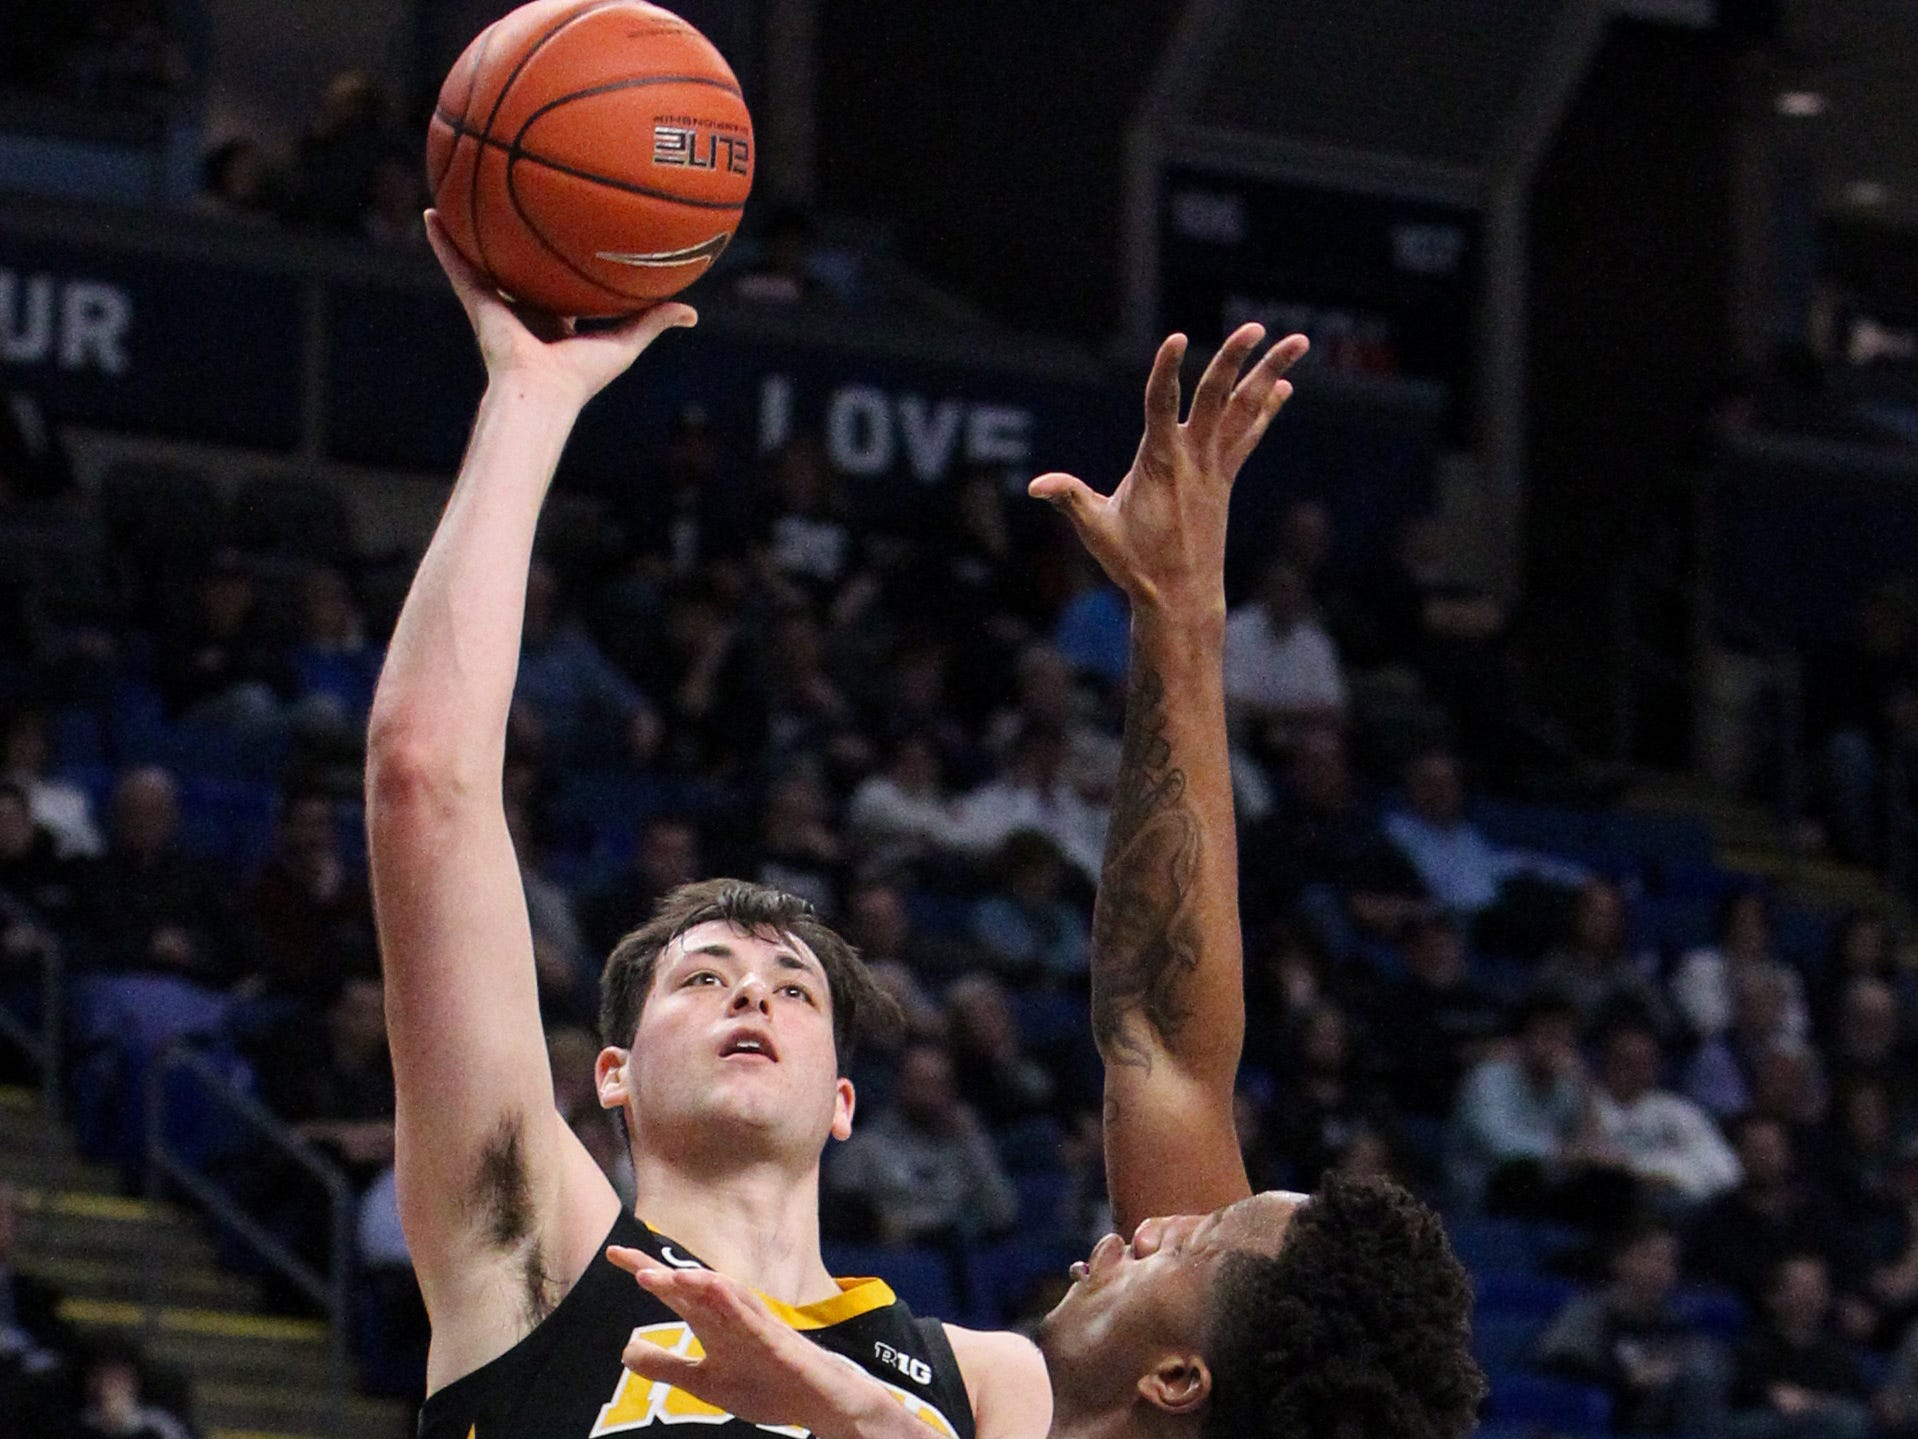 Kriener playing best basketball of his career as No. 24 Hawkeyes ride four-game win streak